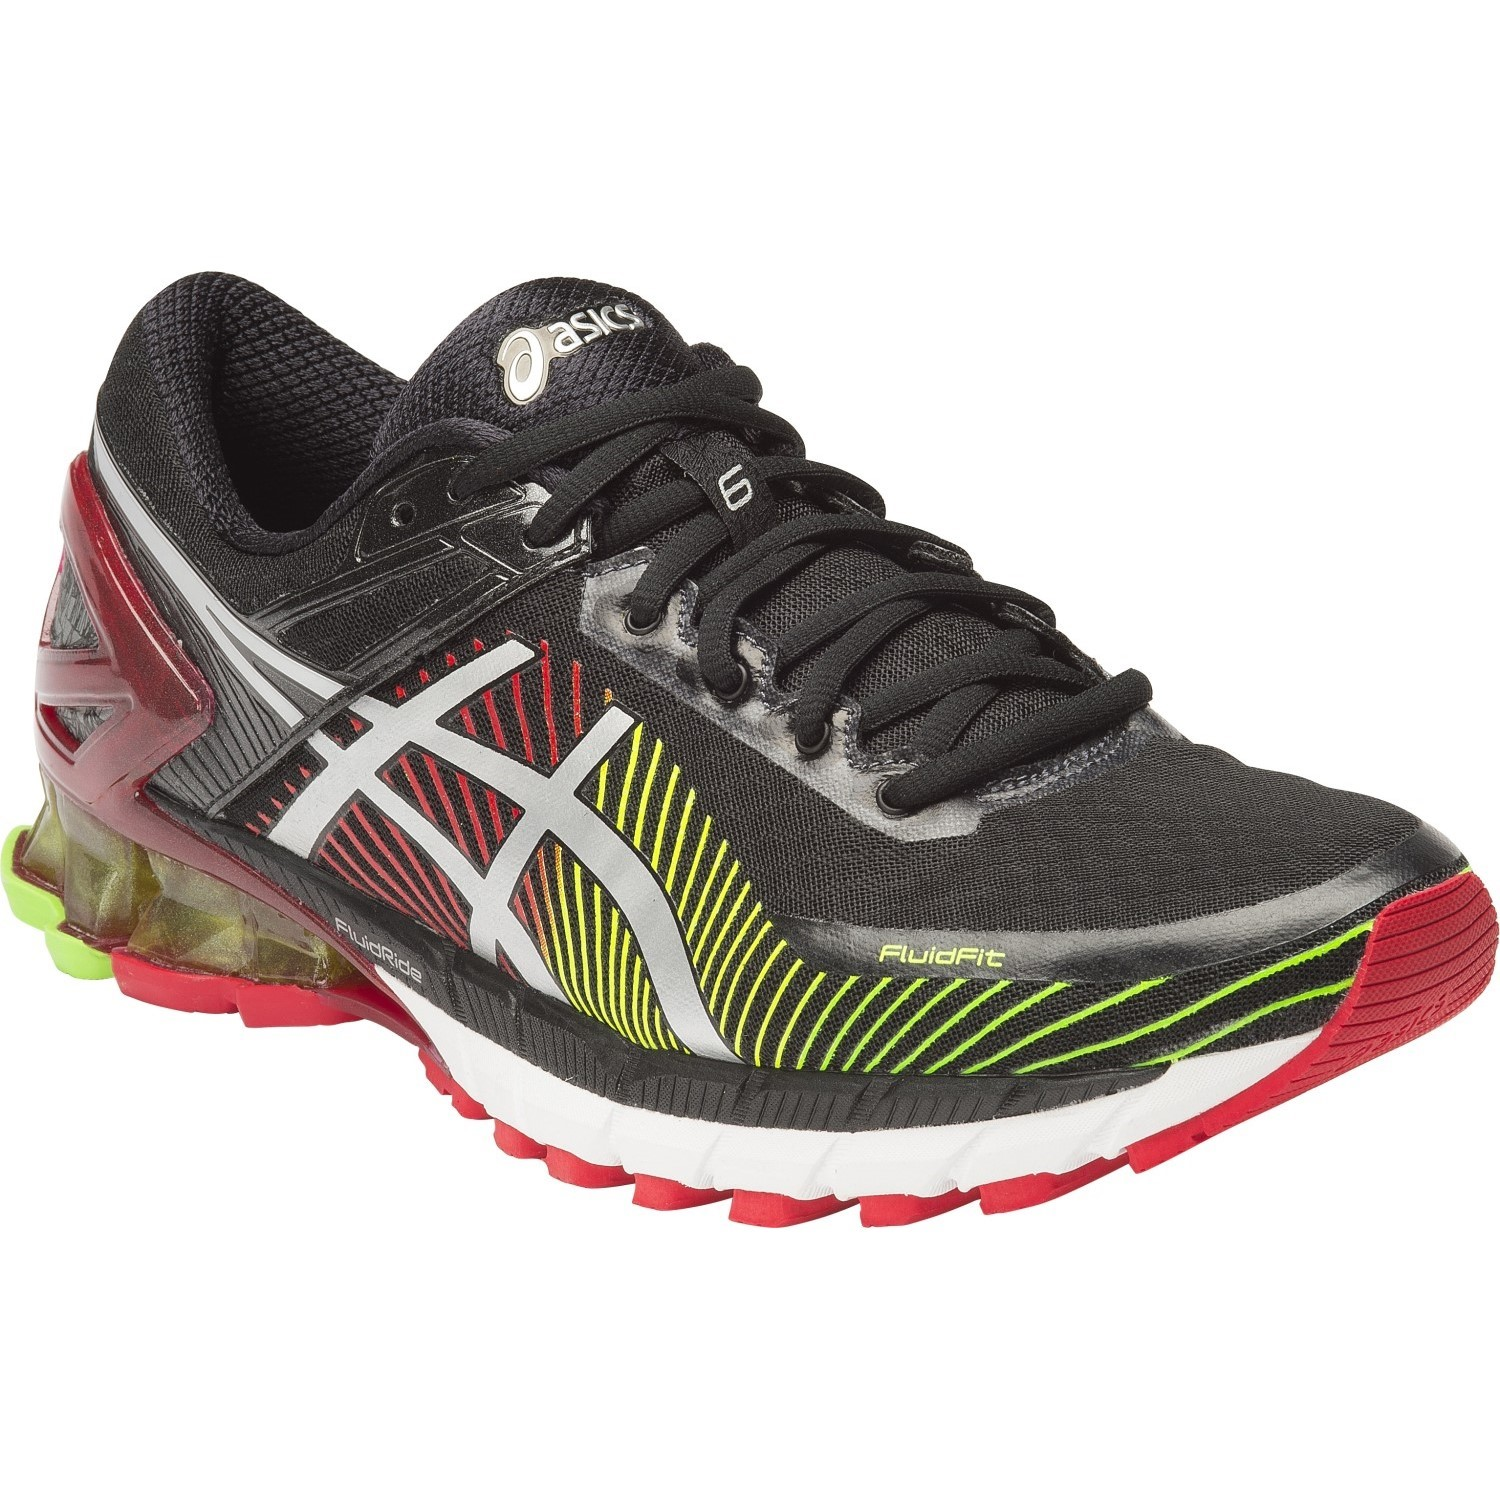 asics kinsei 6 mens running shoes black silver red online sportitude. Black Bedroom Furniture Sets. Home Design Ideas